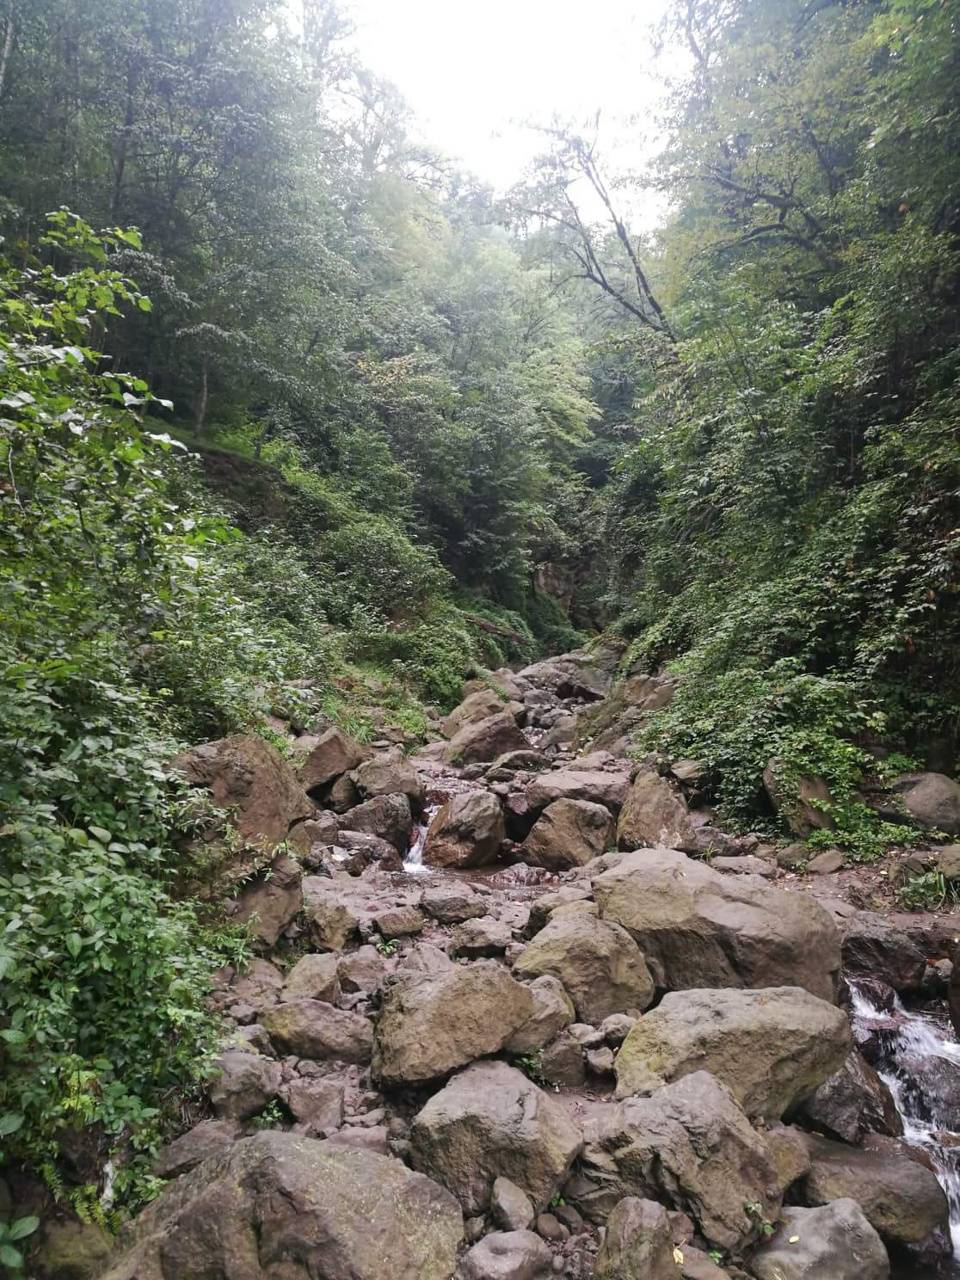 Iran forests